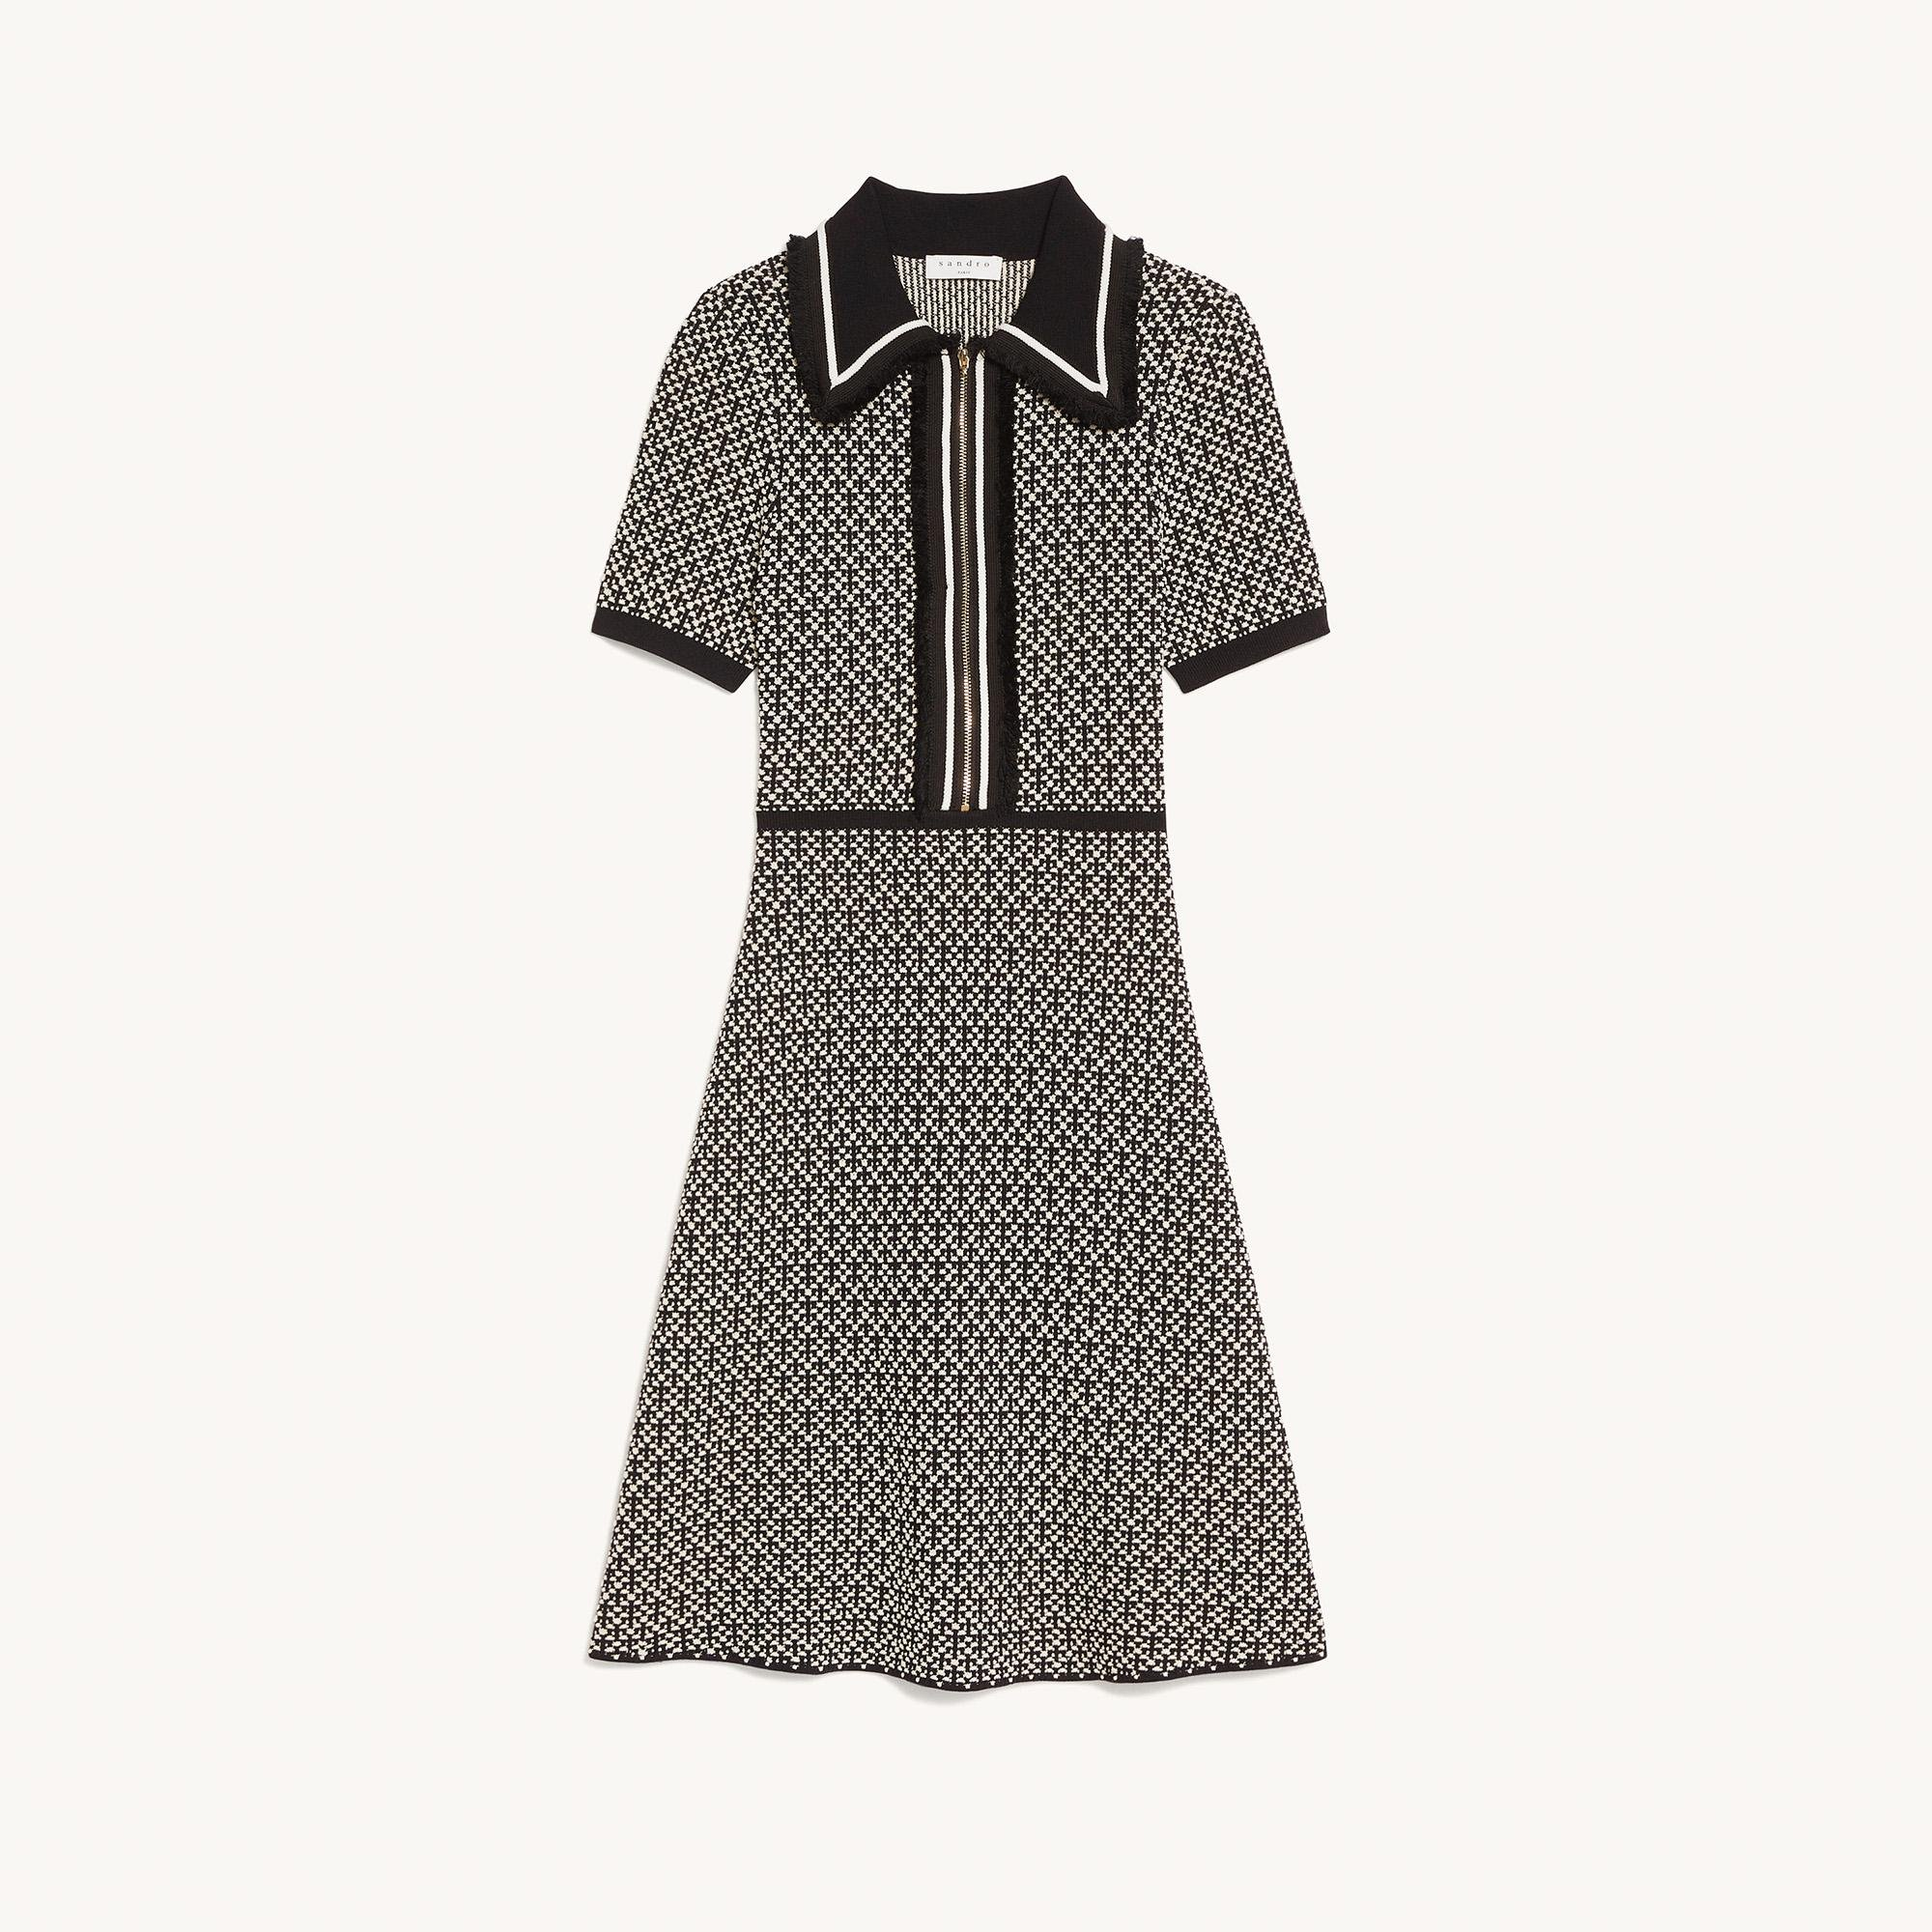 Knit dress with short sleeves